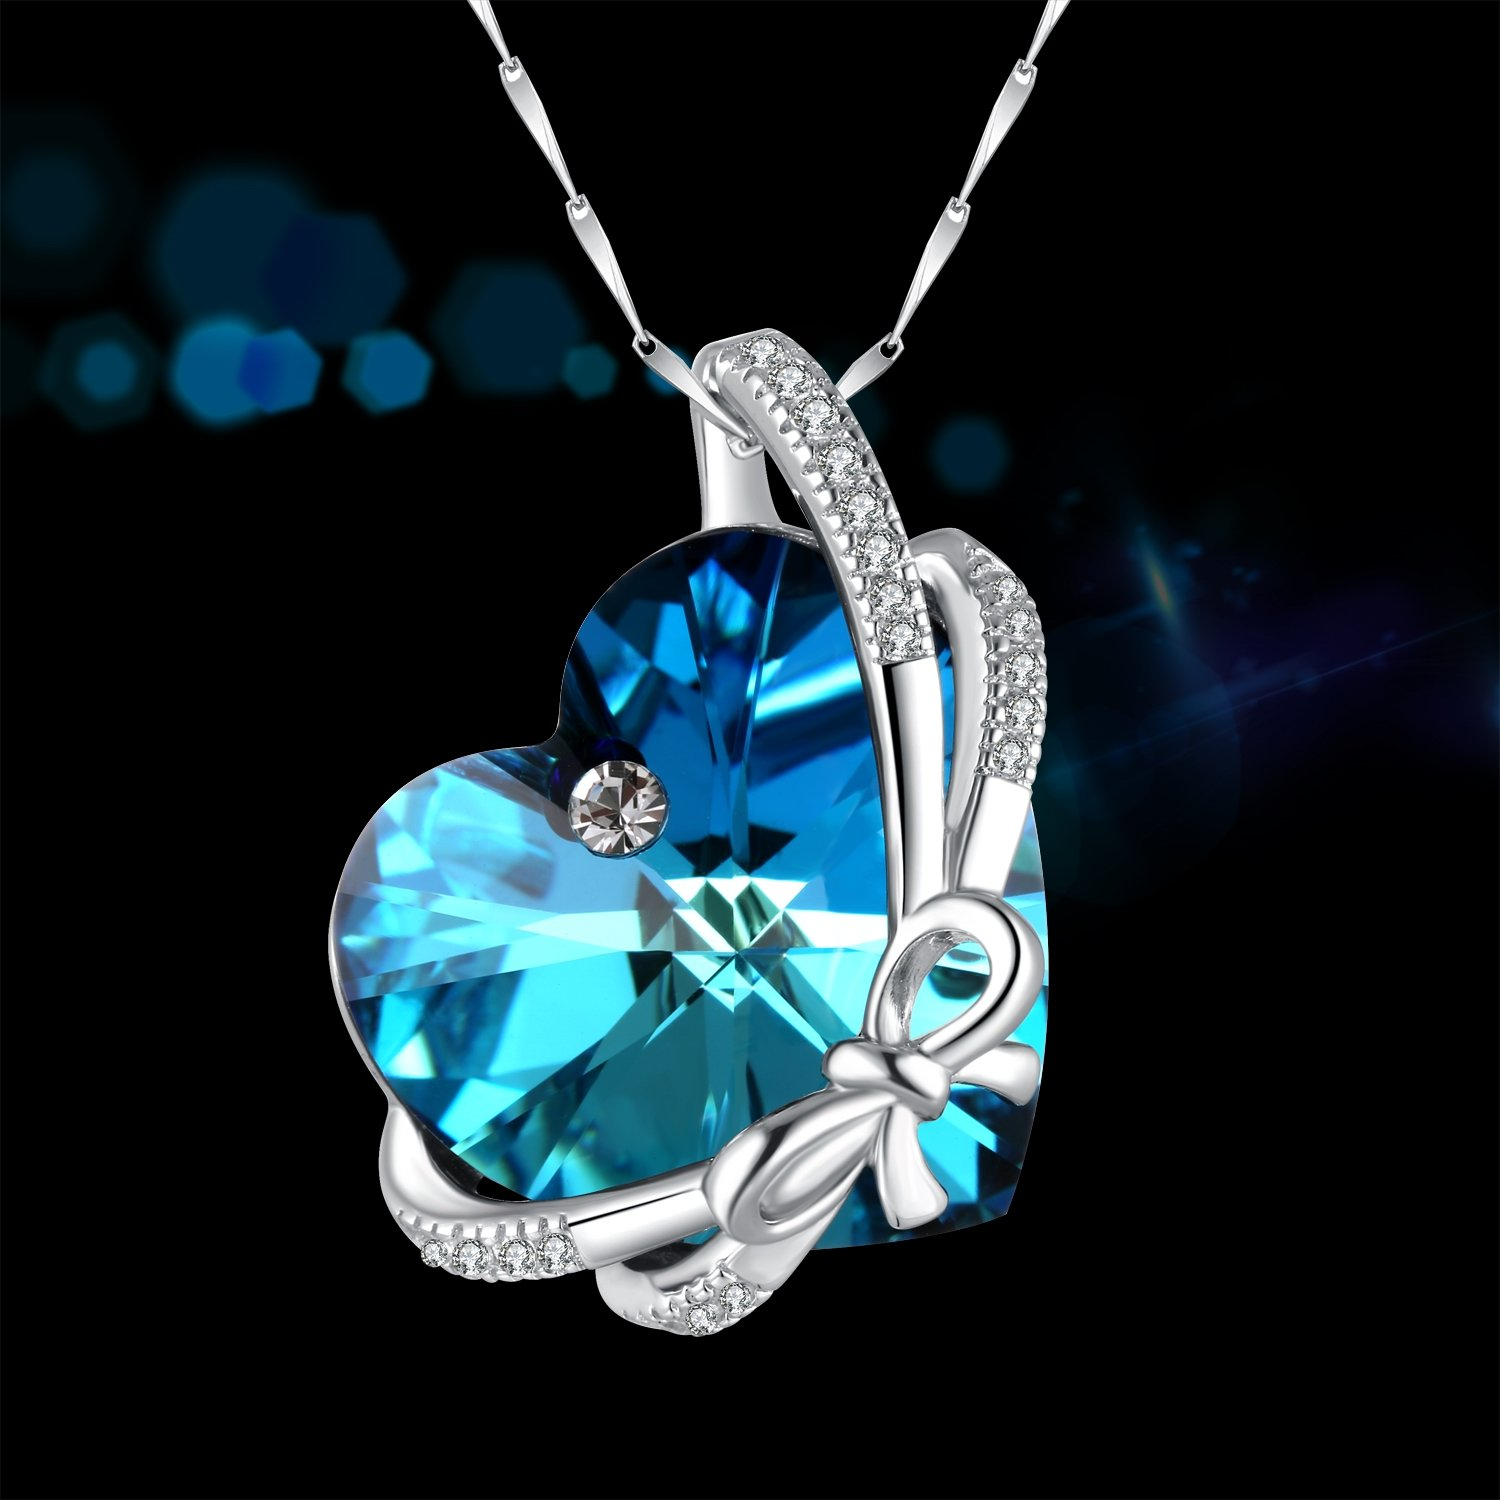 020501f875214 SUE'S SECRET Heart Shaped Birthstone Necklace 925 Sterling Silver Bowknot  Necklace with Swarovski Heart Shape Crystals, Sterling Silver Bowtie Heart  ...